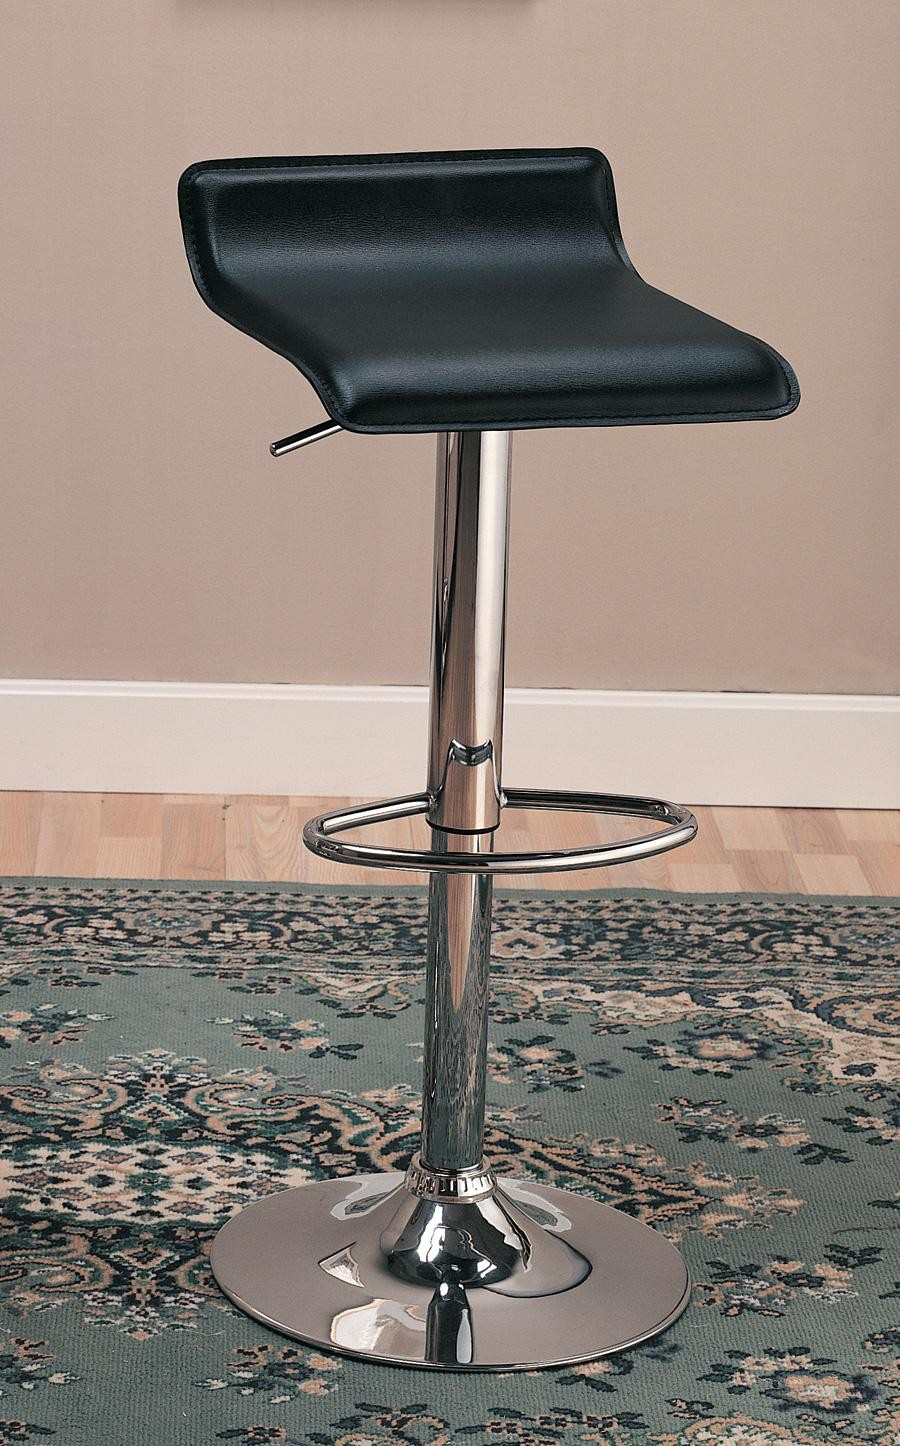 120390 29 Quot Bar Stool Set Of 2 From Coaster 120390